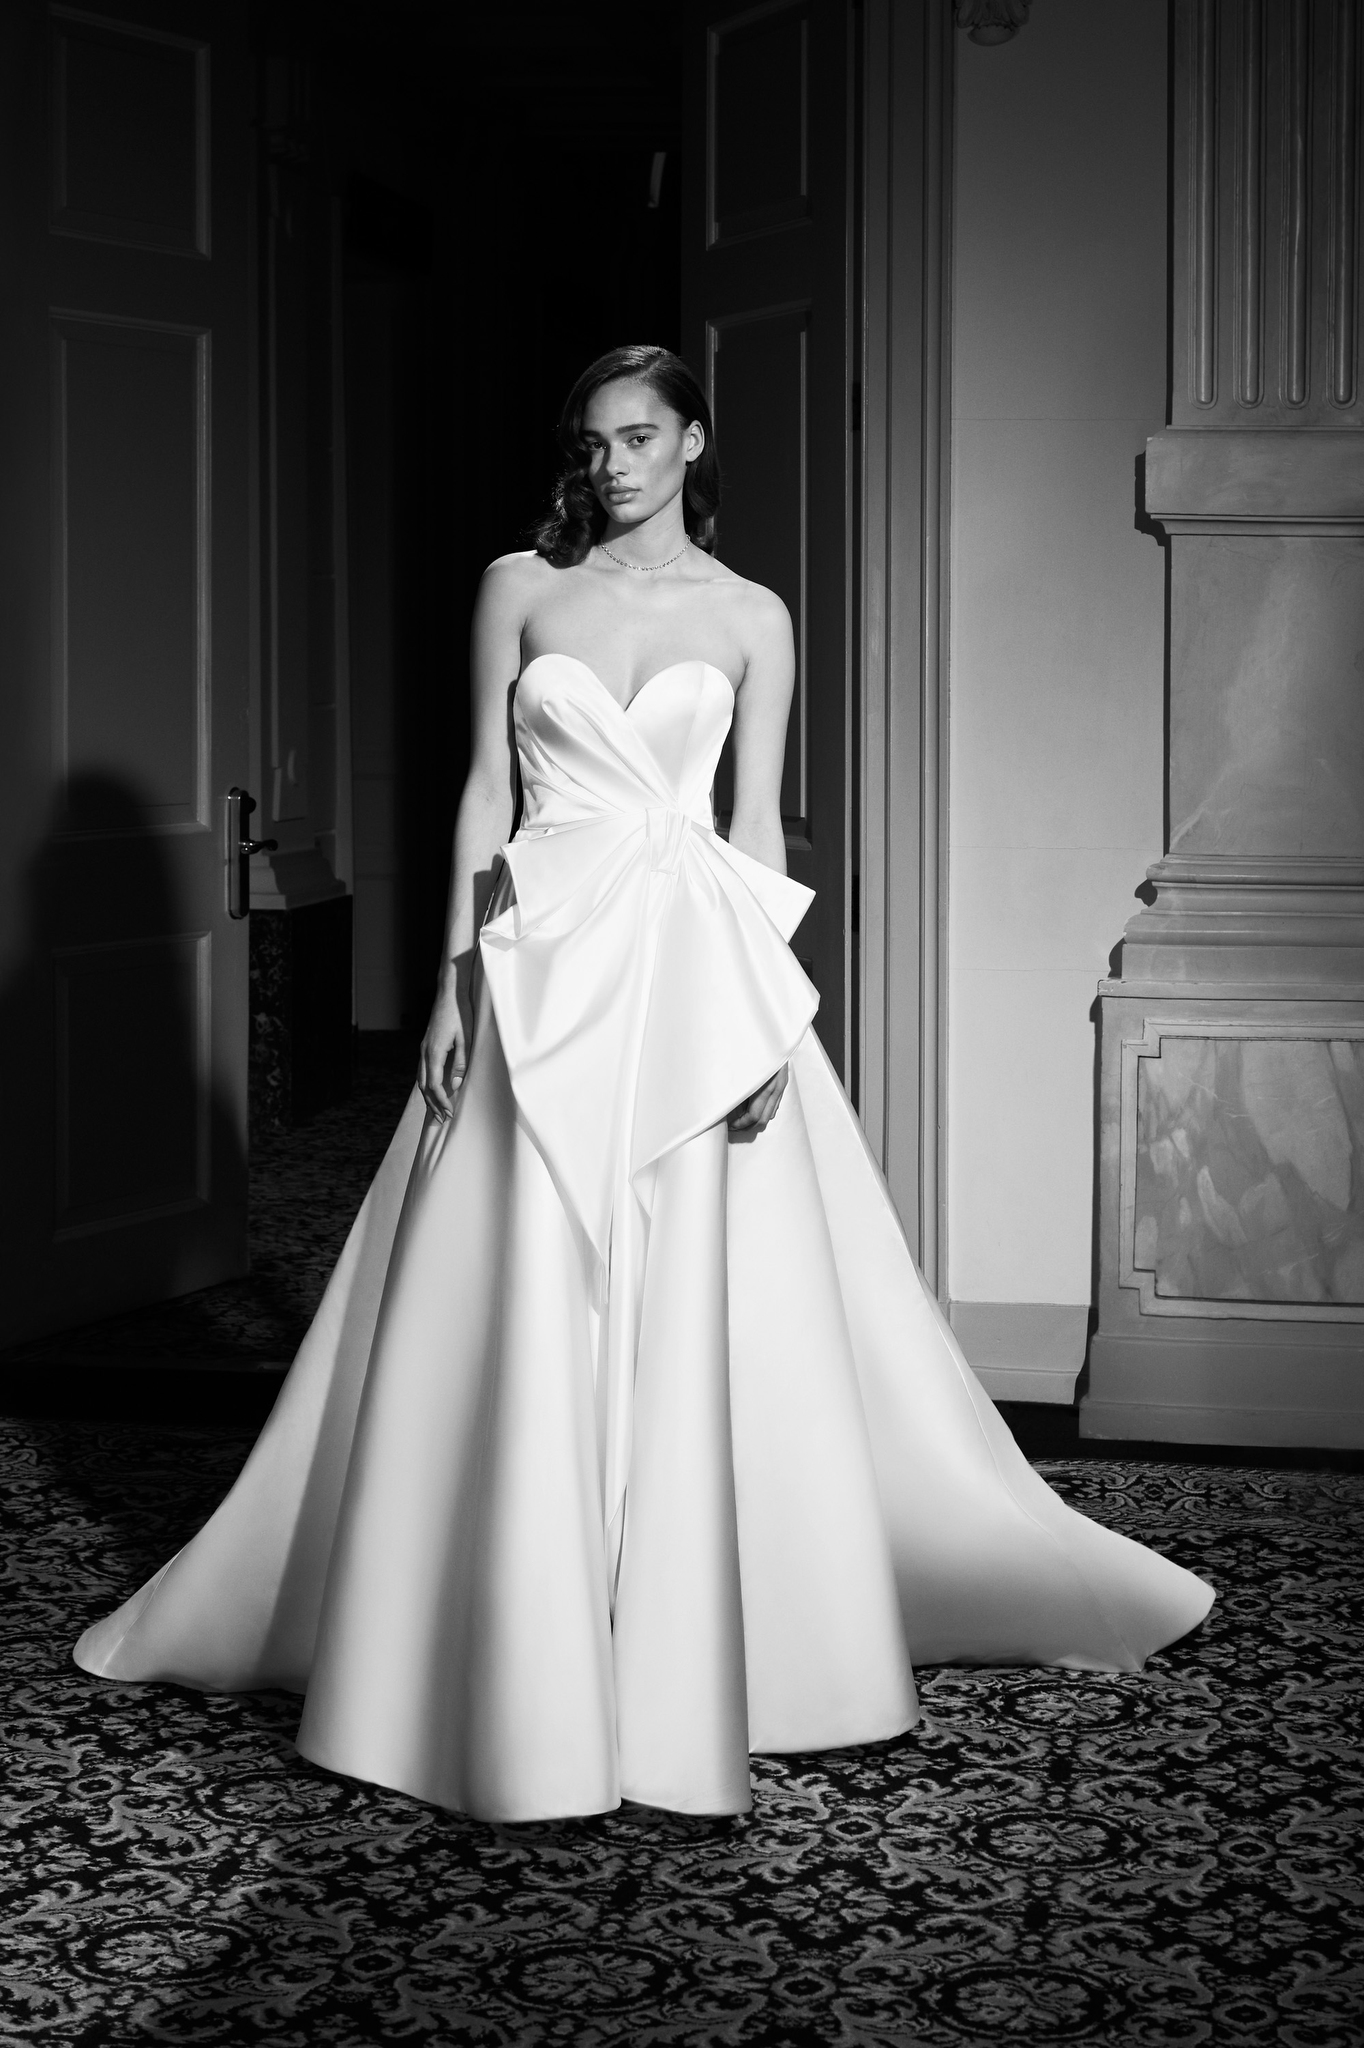 Viktor&Rolf Bridal Spring 2022